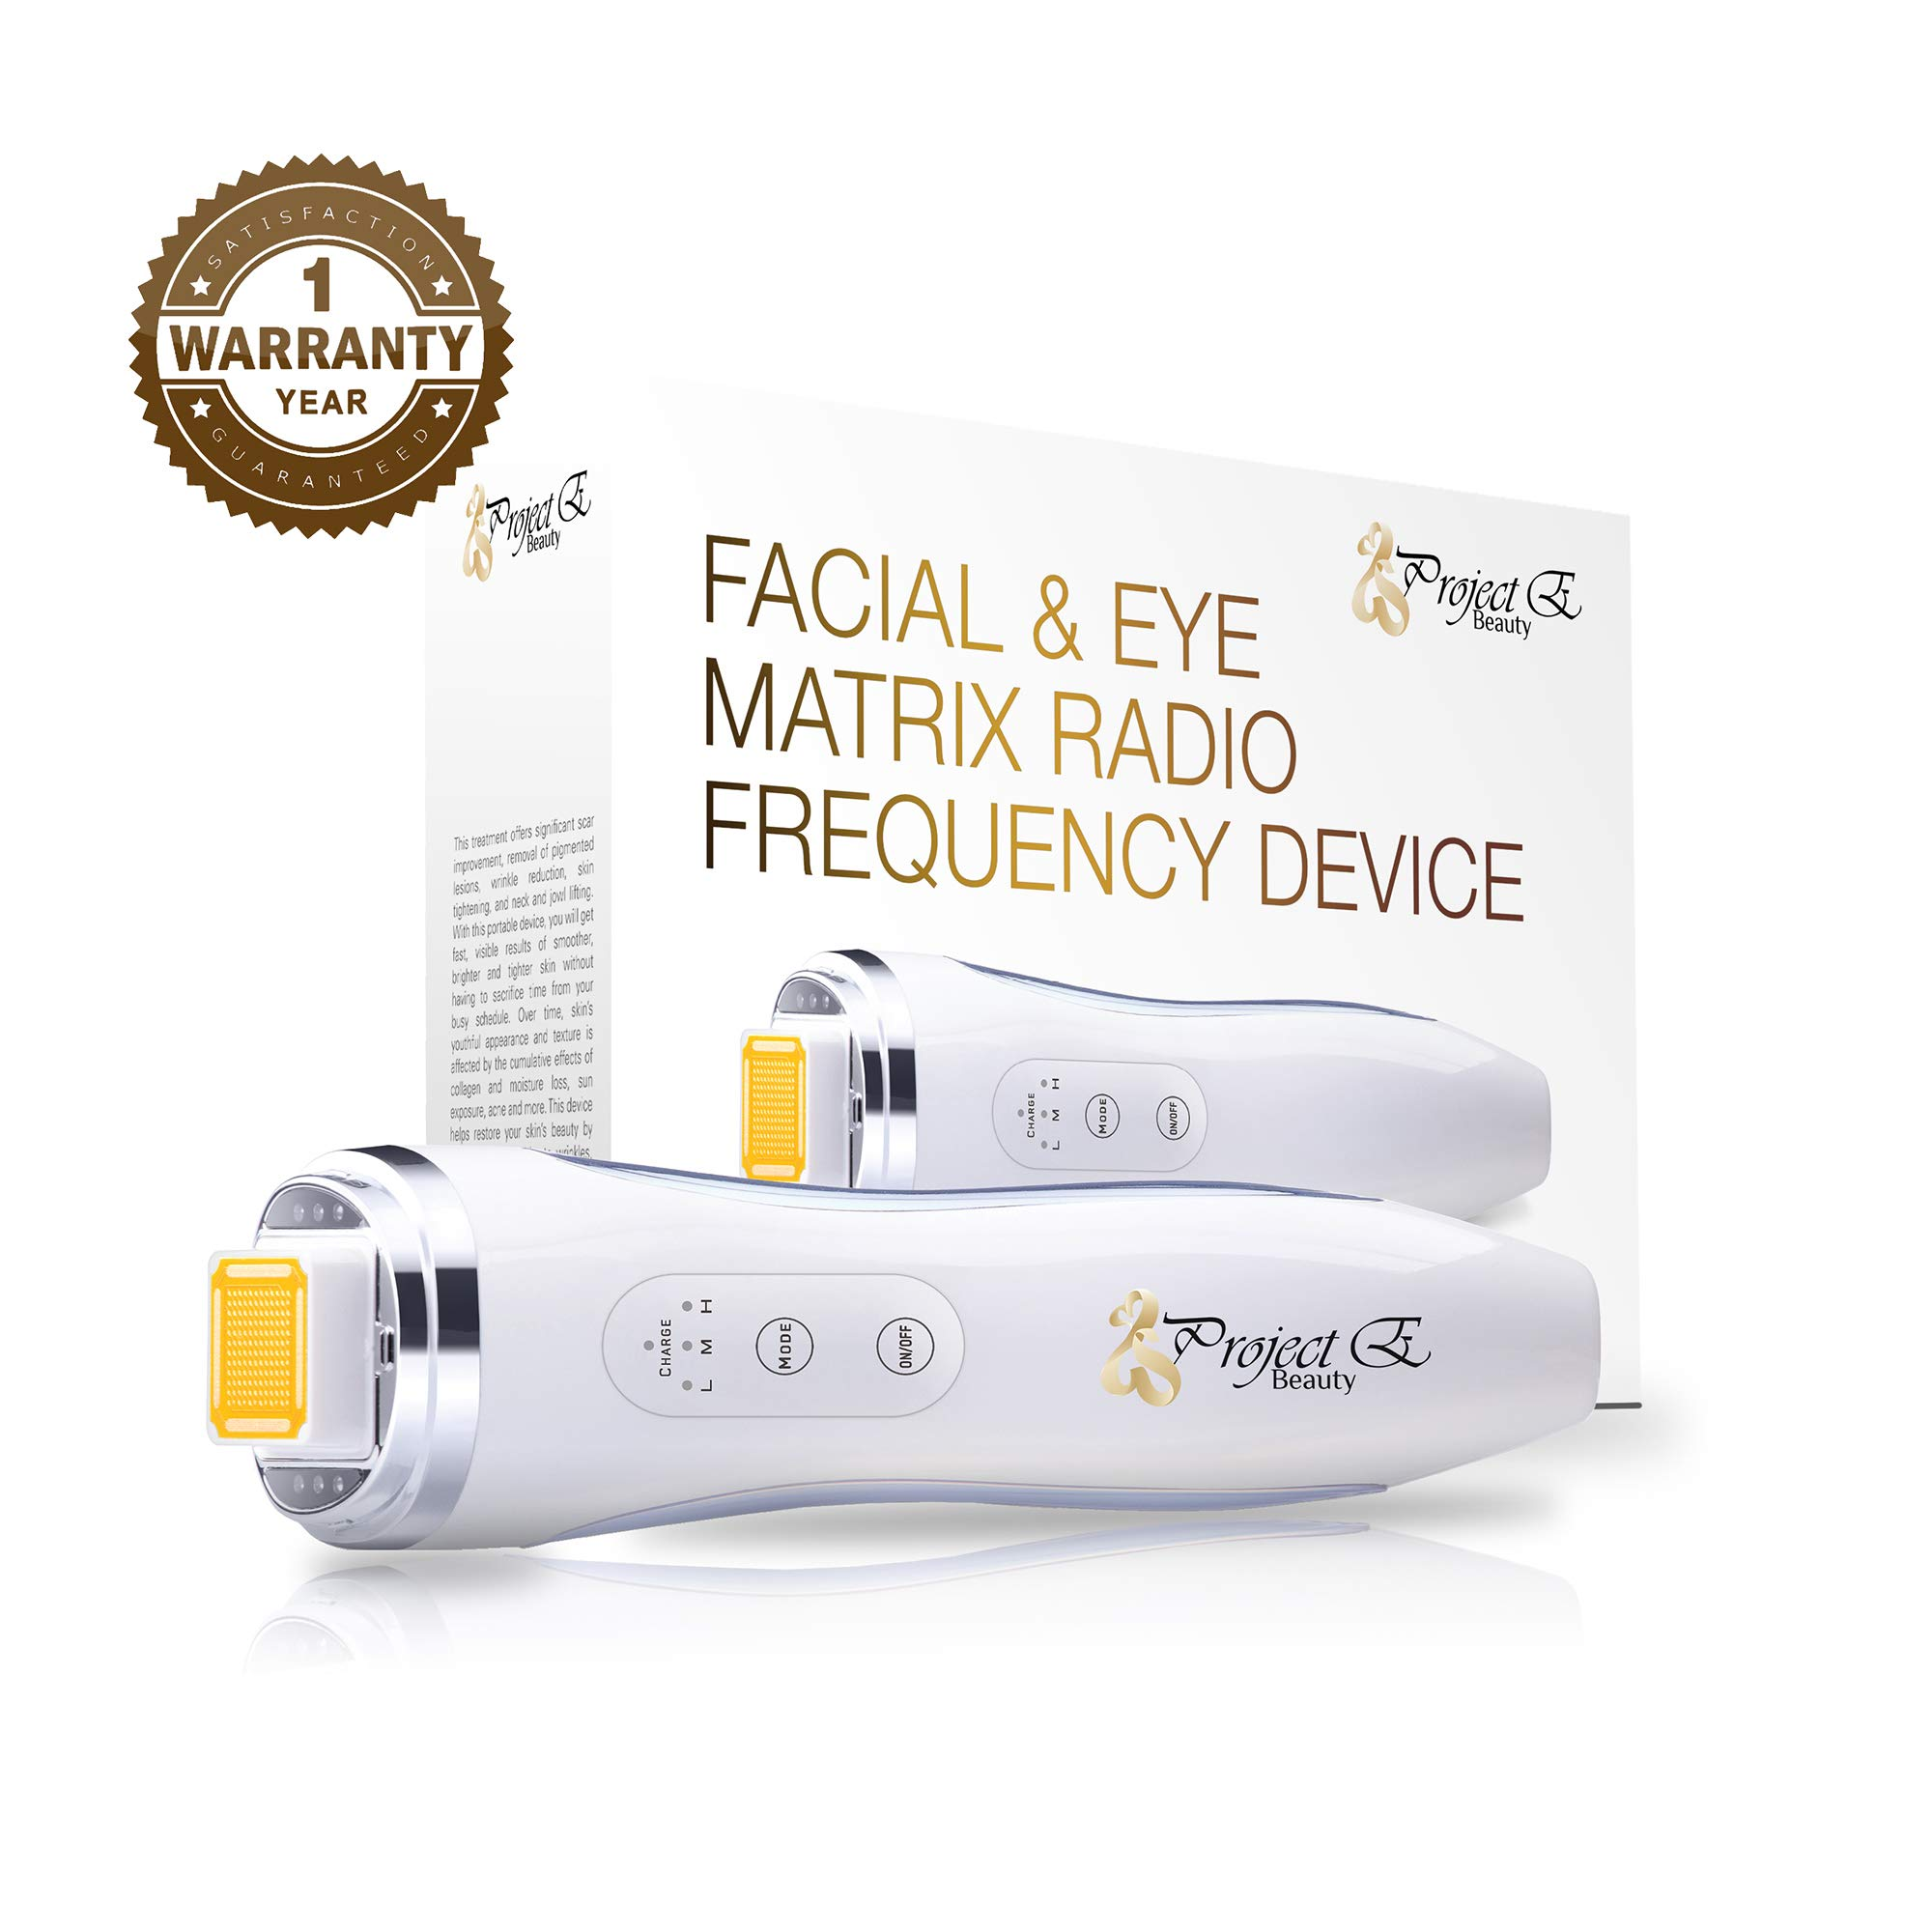 Project E Beauty Newest Best Effect Skin Tighten Face Lift Wrinkle Removal Skin Rejuvenation Mini Handheld Home Use Fractional Rf Machine by Project E Beauty